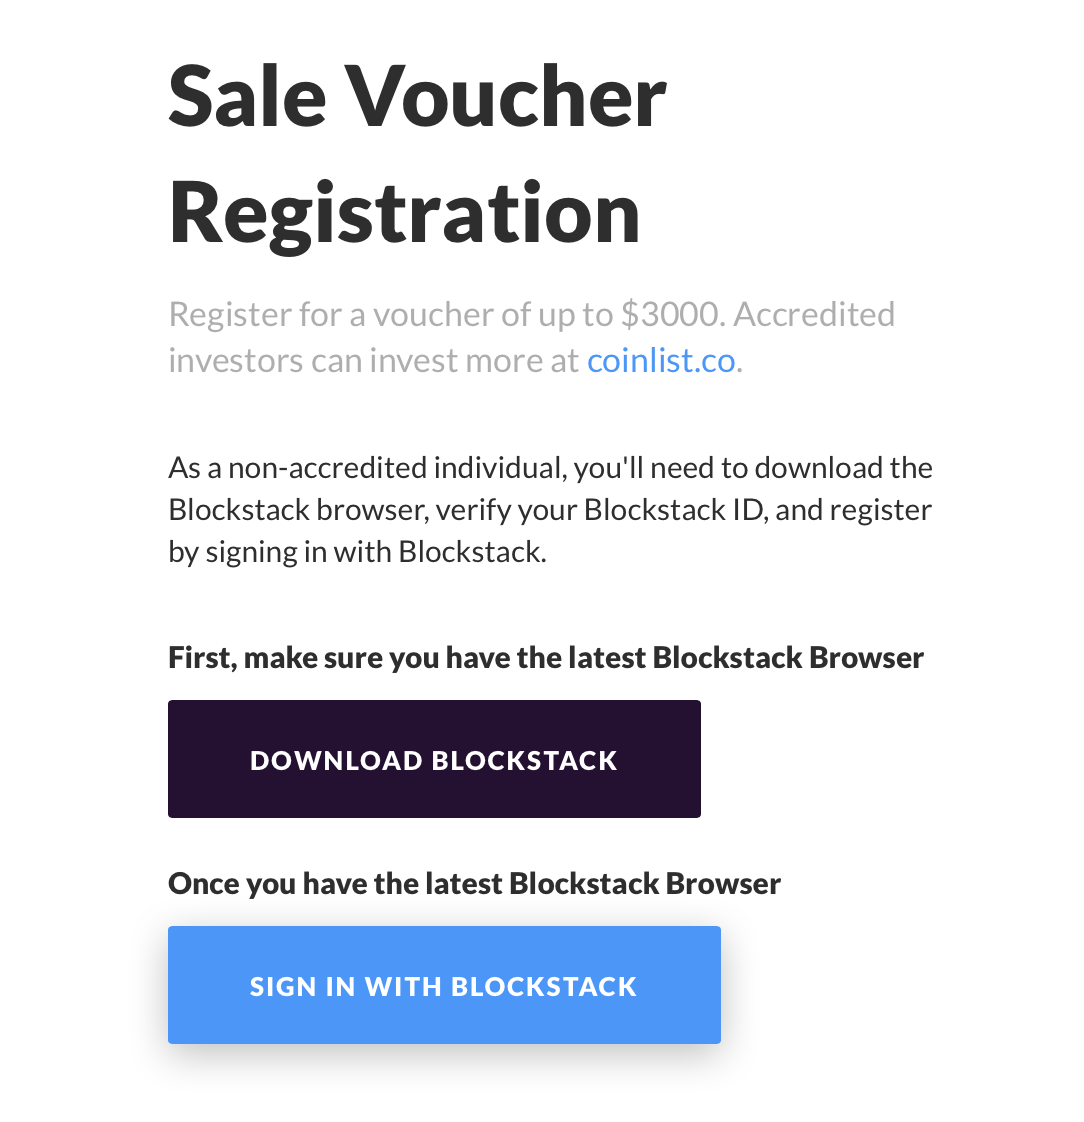 Sign in with Blockstack